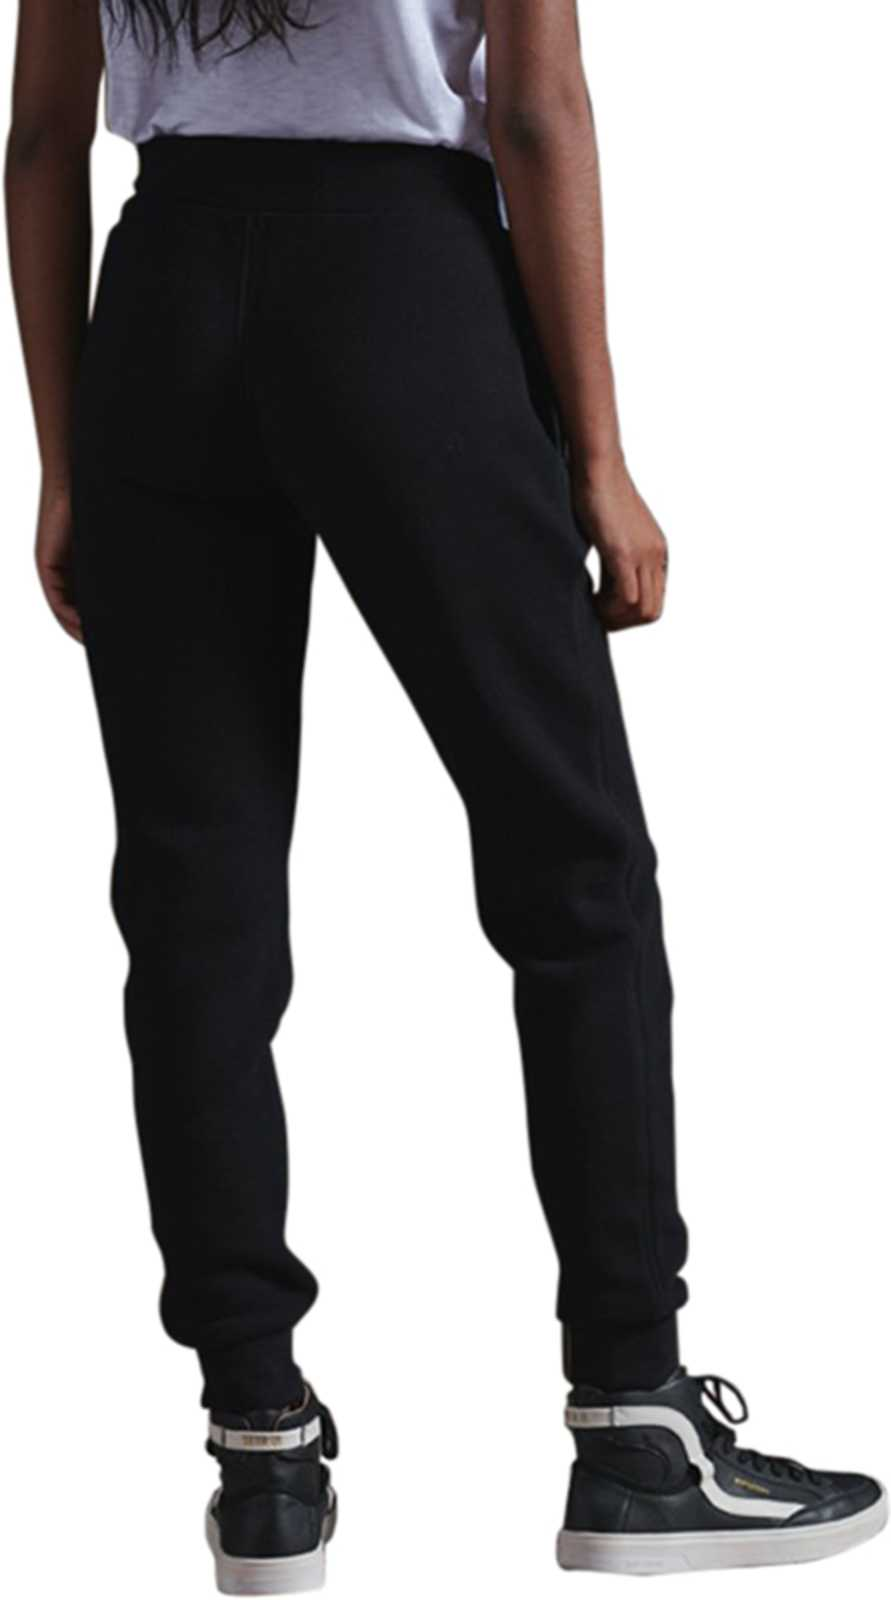 Superdry Orange Label Jogger Bottoms	Black